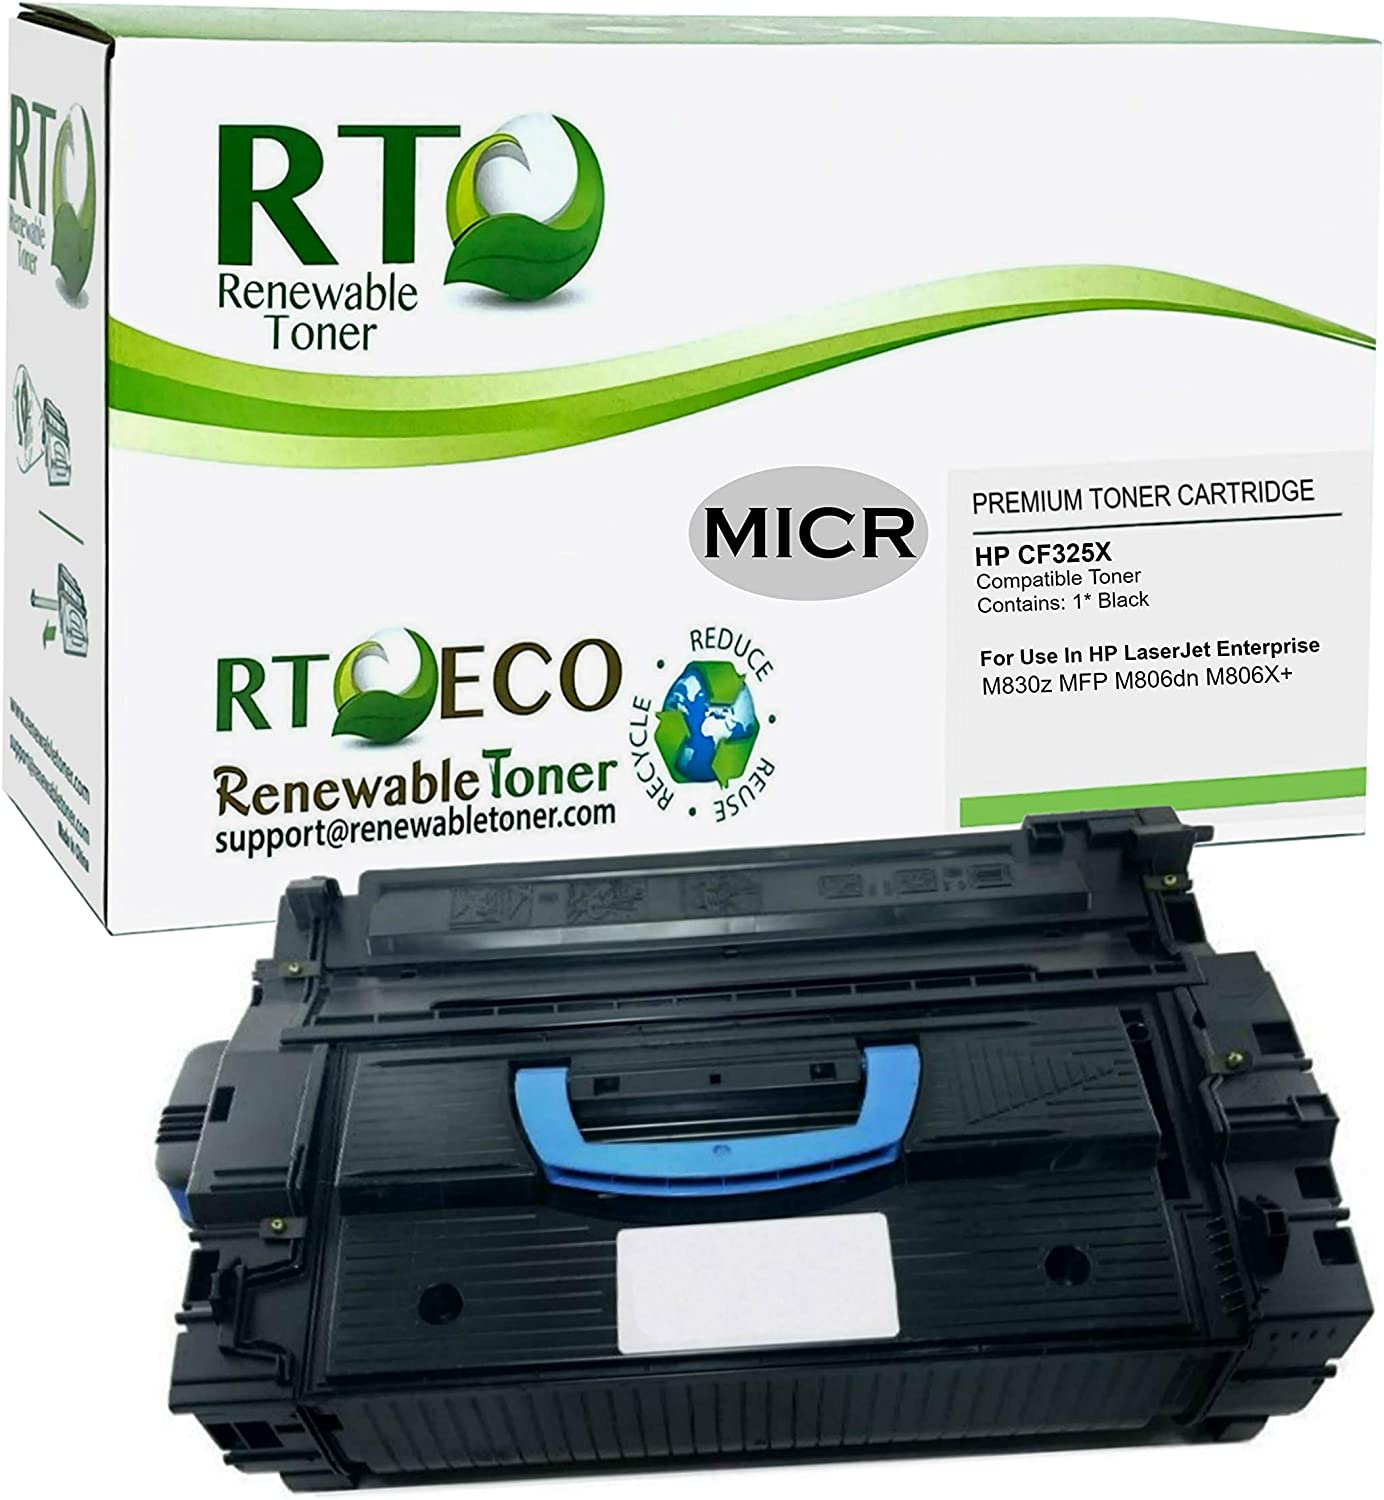 Renewable Toner MICR Toner Cartridge High Yield Replacement for HP 25X CF325X Laserjet M830 M806 Remanufactured in USA